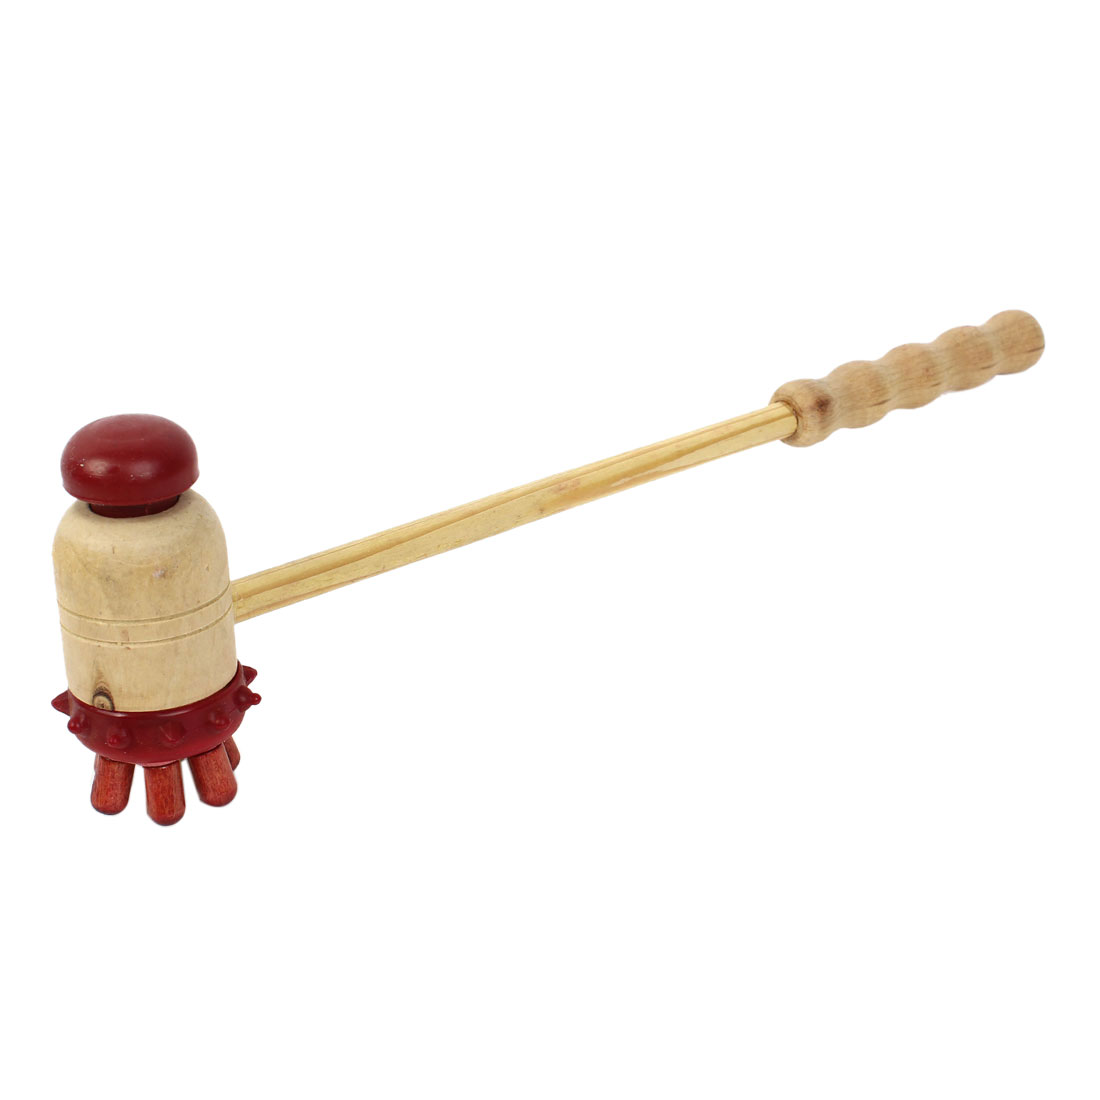 Home Wooden Handle 2 Ways Back Scratcher Hammer Body Massager 30cm Long